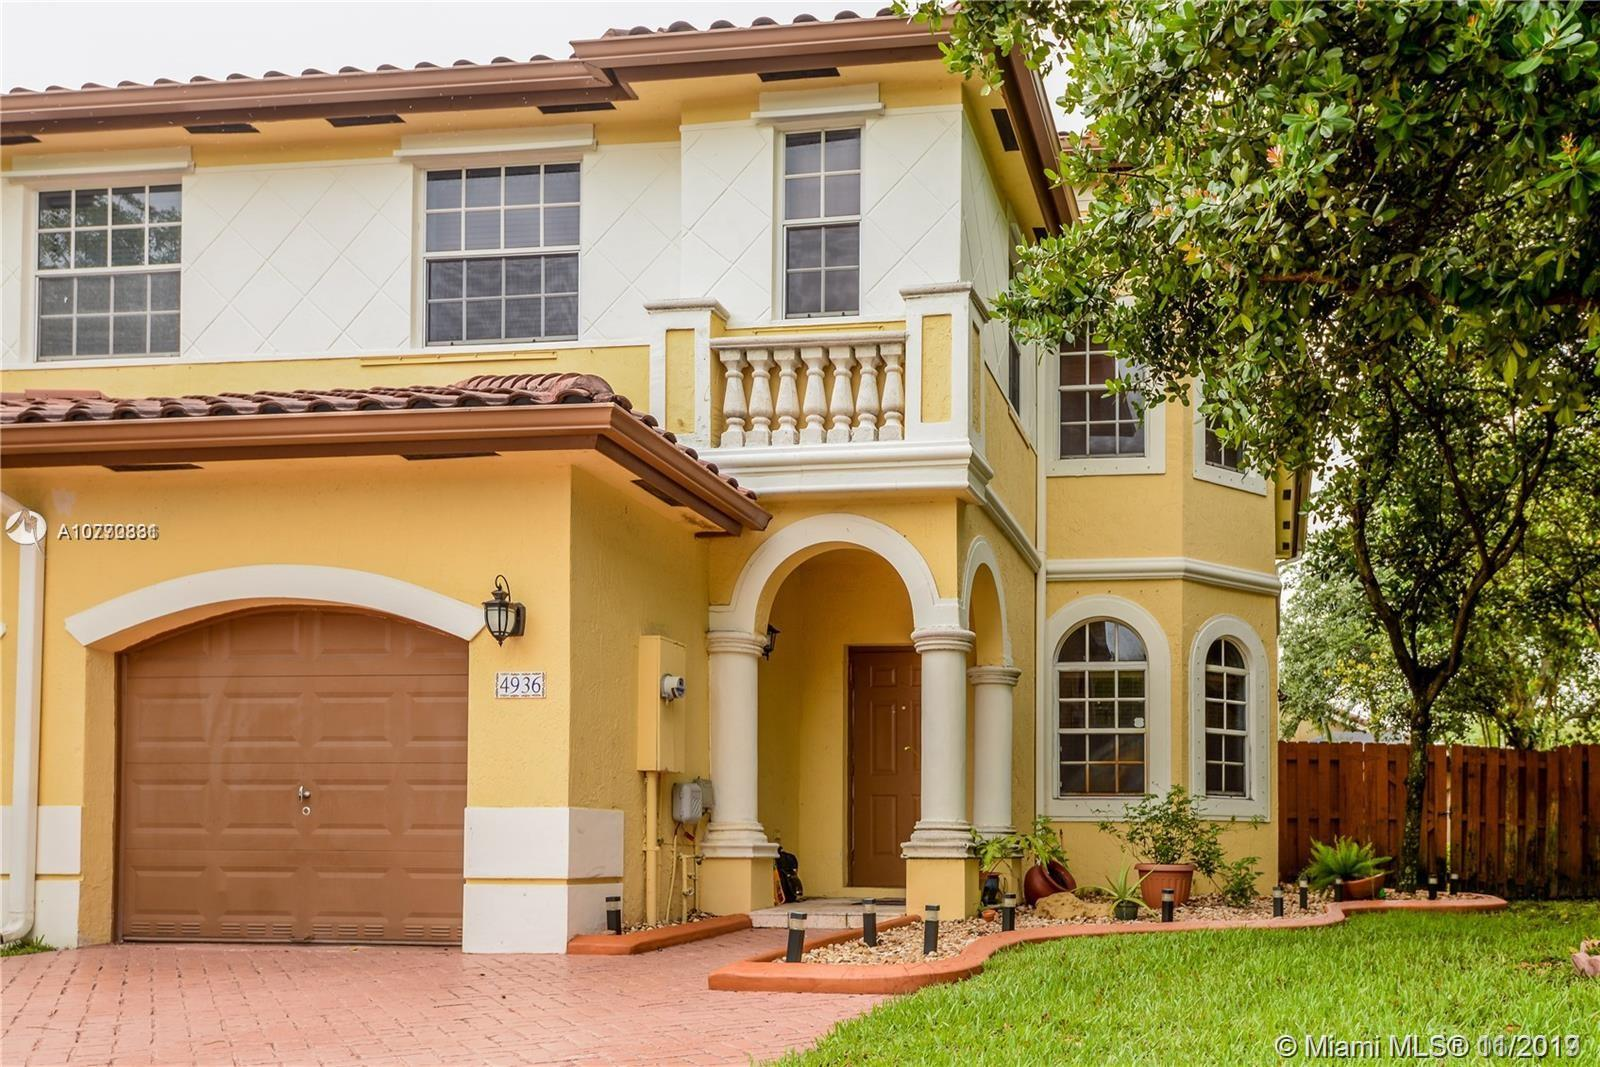 4936 S W 136th Ave #4936 For Sale A10770831, FL